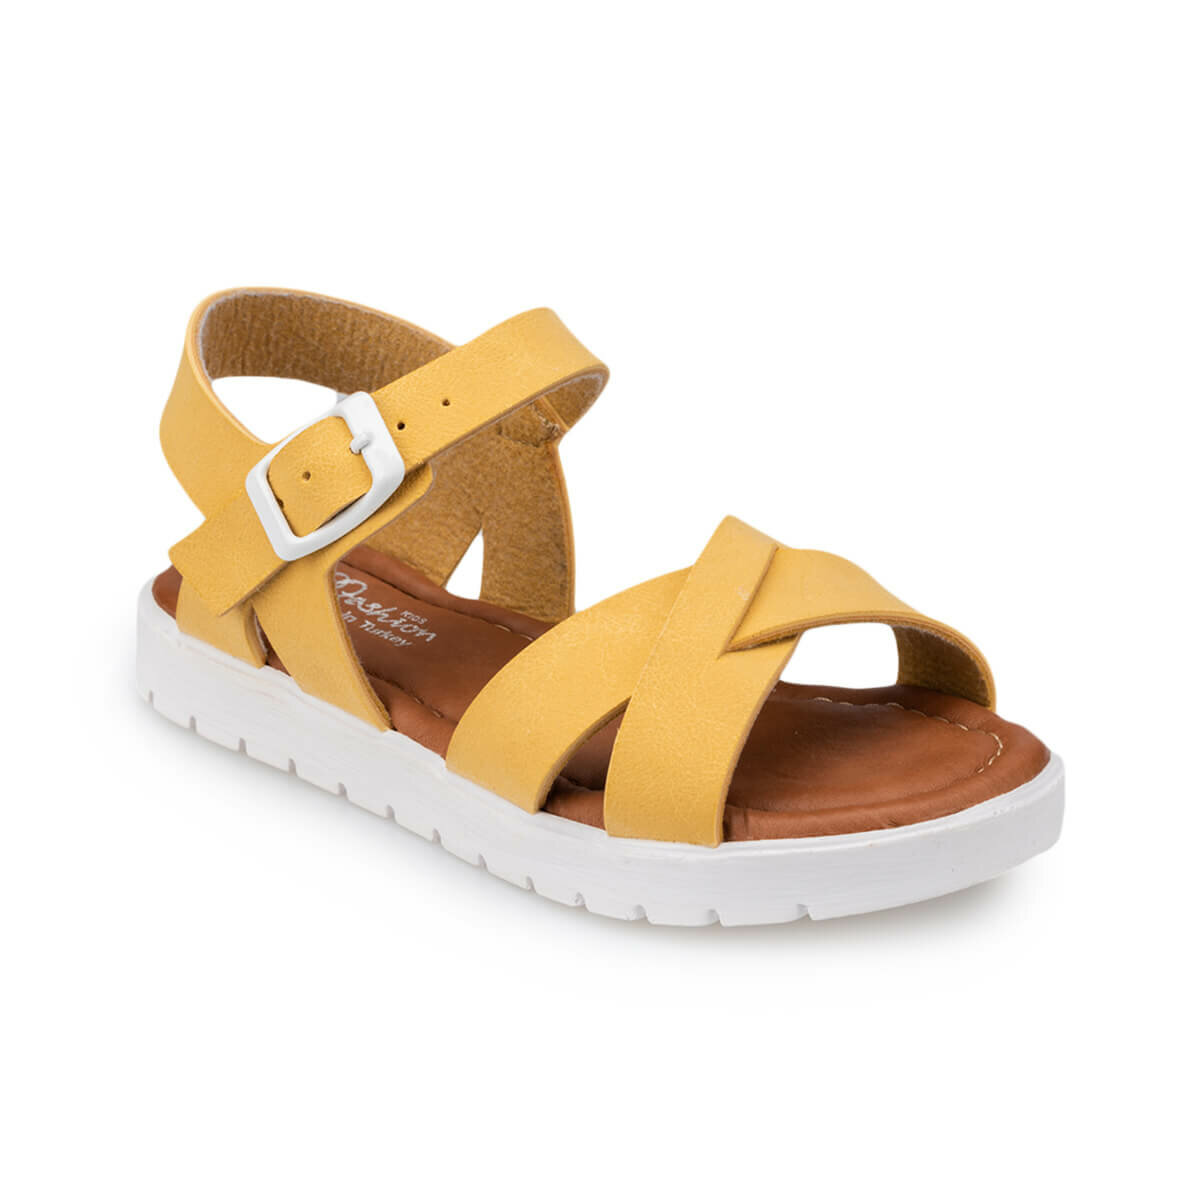 FLO 91. 508159.B Yellow Female Child Sandals Polaris